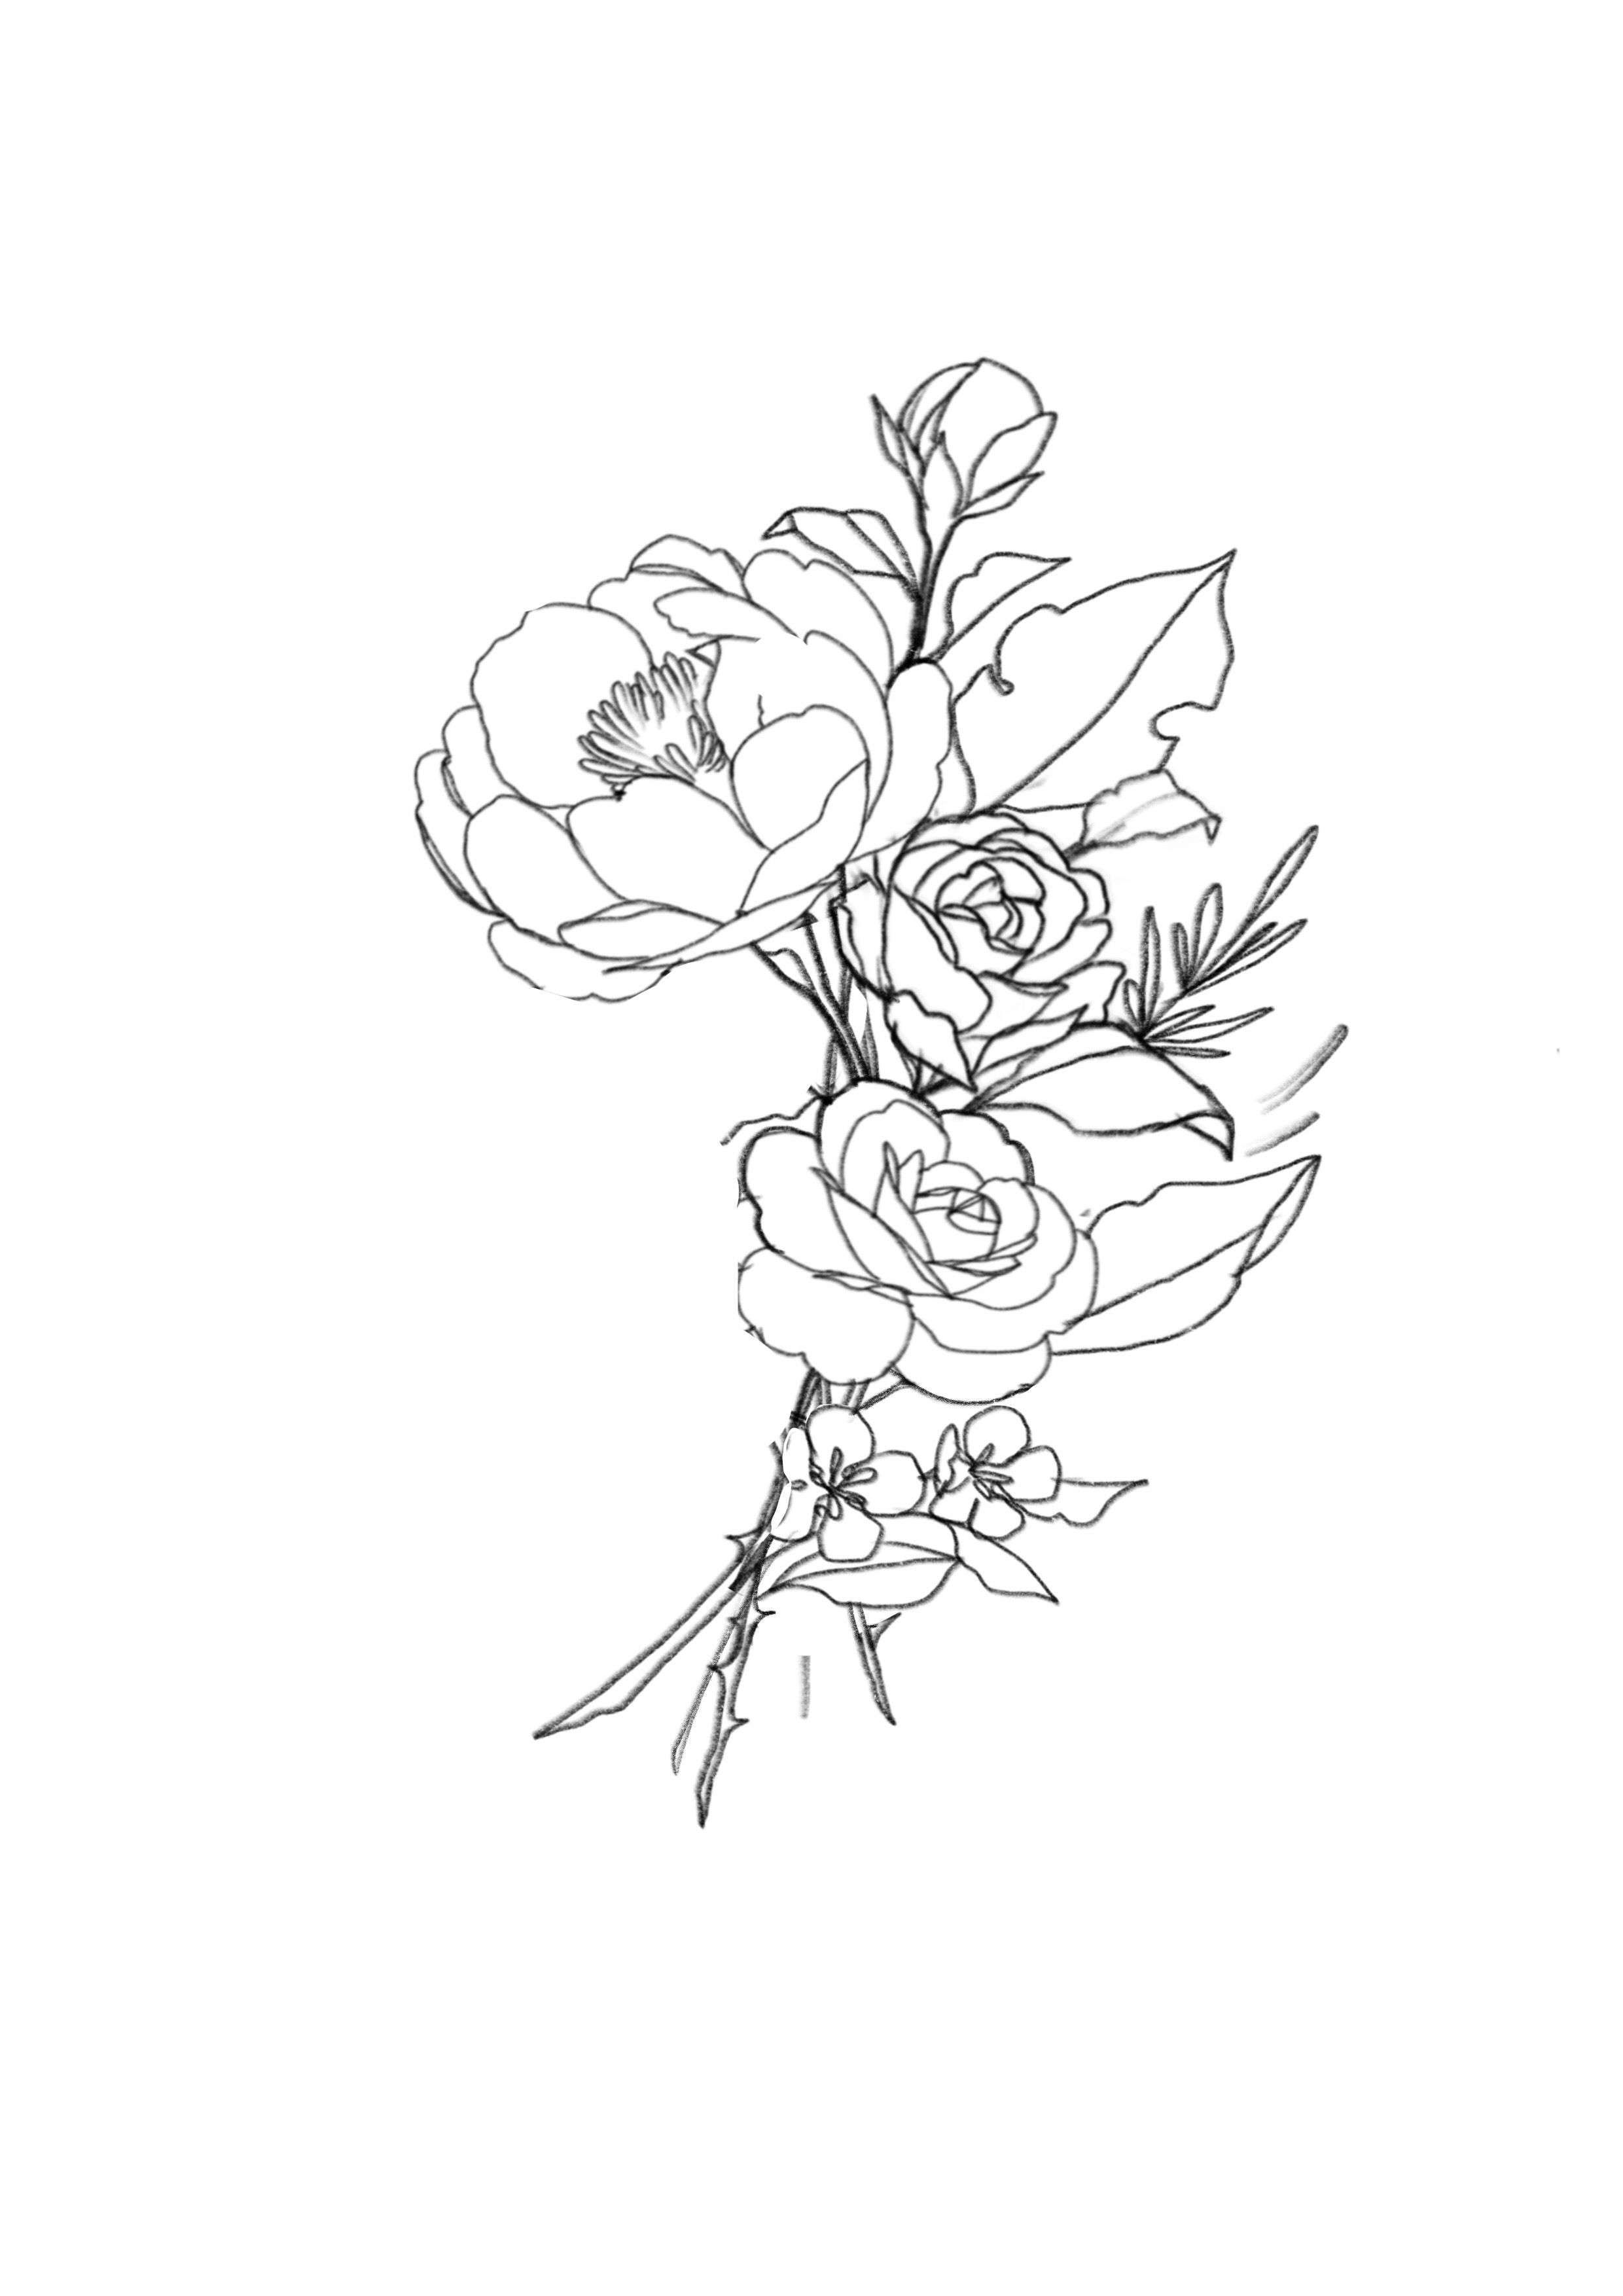 Inspiration For Cute Simple Mini Flower Tattoo Ideas Awesome Mini Bouquet Of Flowers Female Figures Favorit Flower Bouquet Drawing Flower Tattoo Flower Drawing